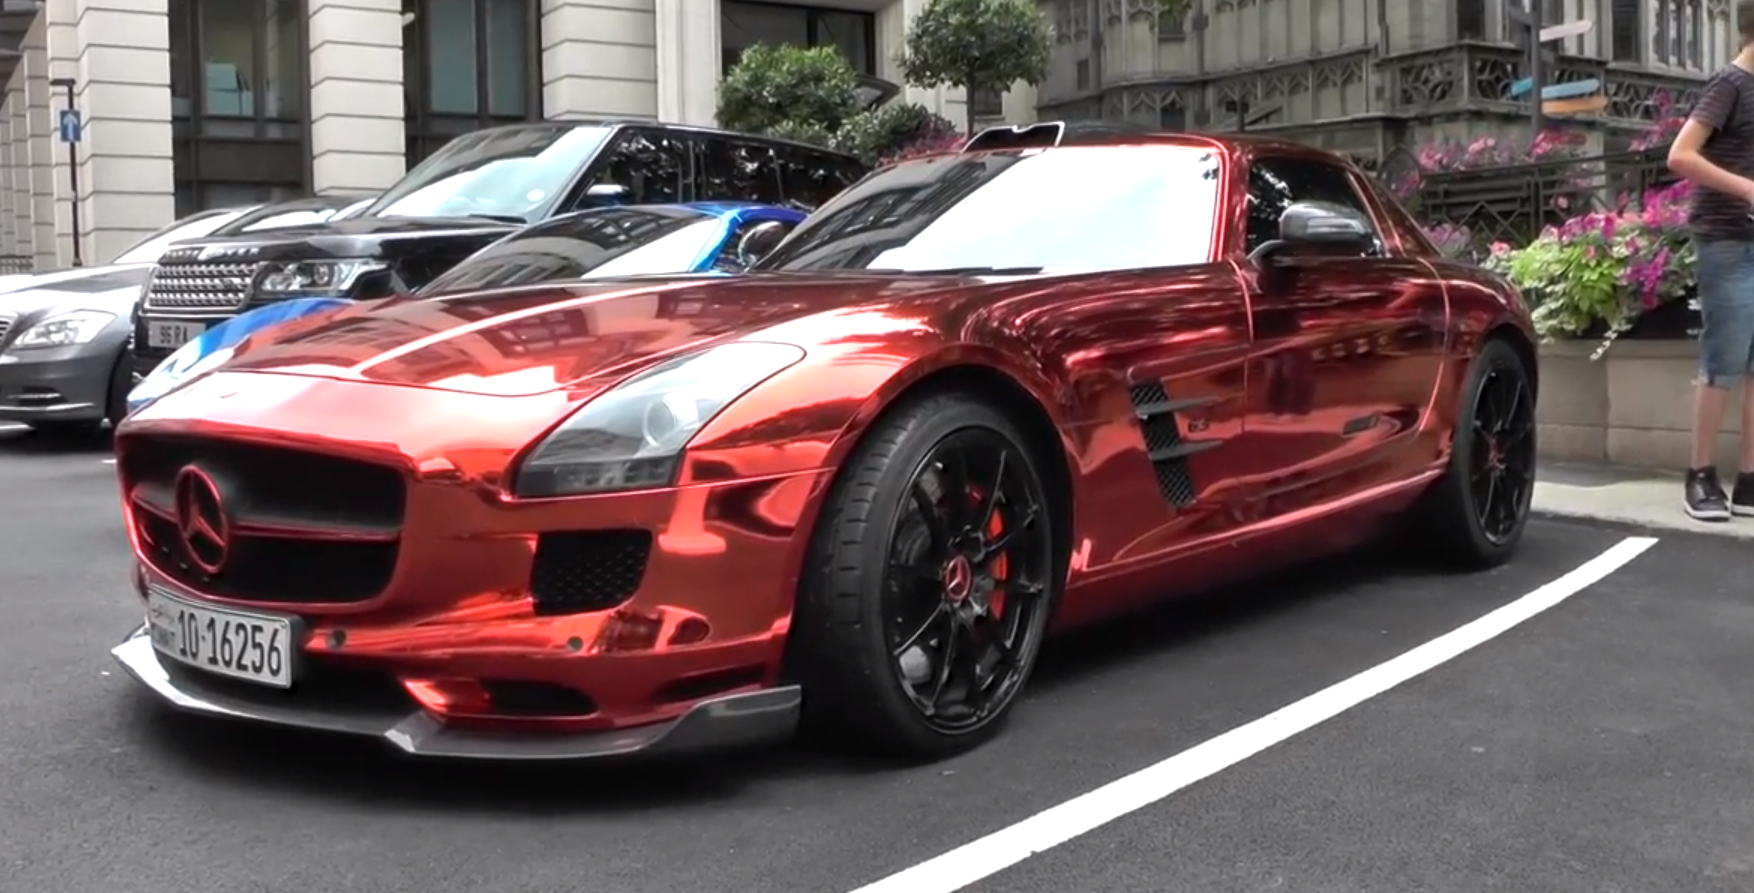 Red Chrome Mercedes Sls Spotted In London